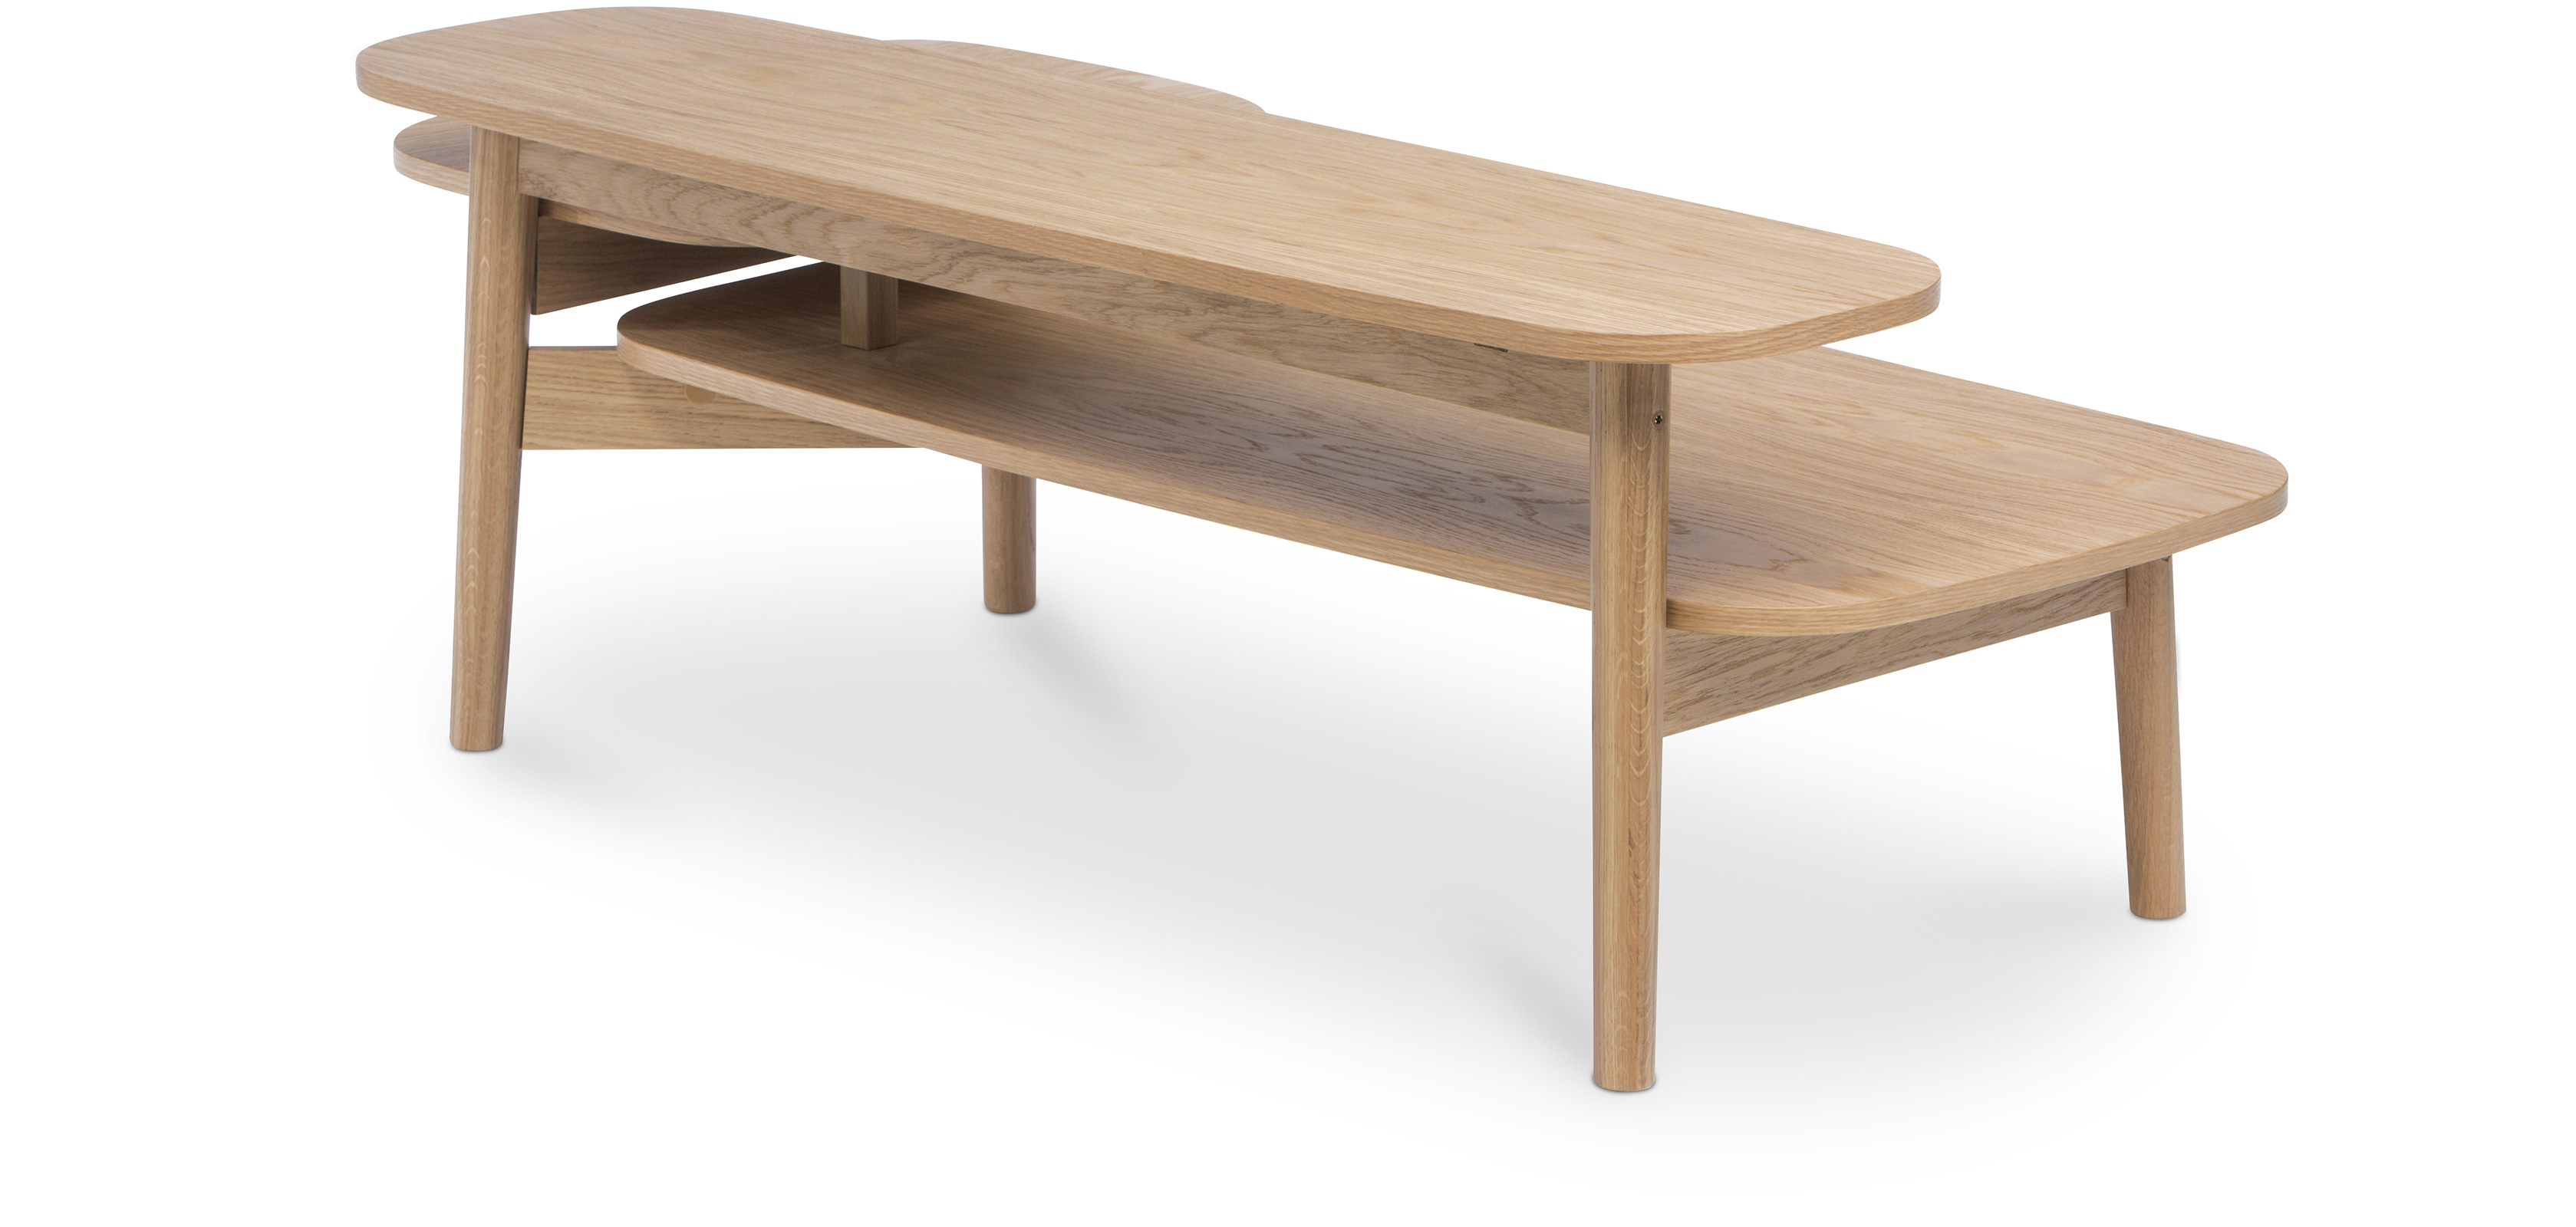 Table basse trois niveaux style scandinave - Table basse ouvrable ...